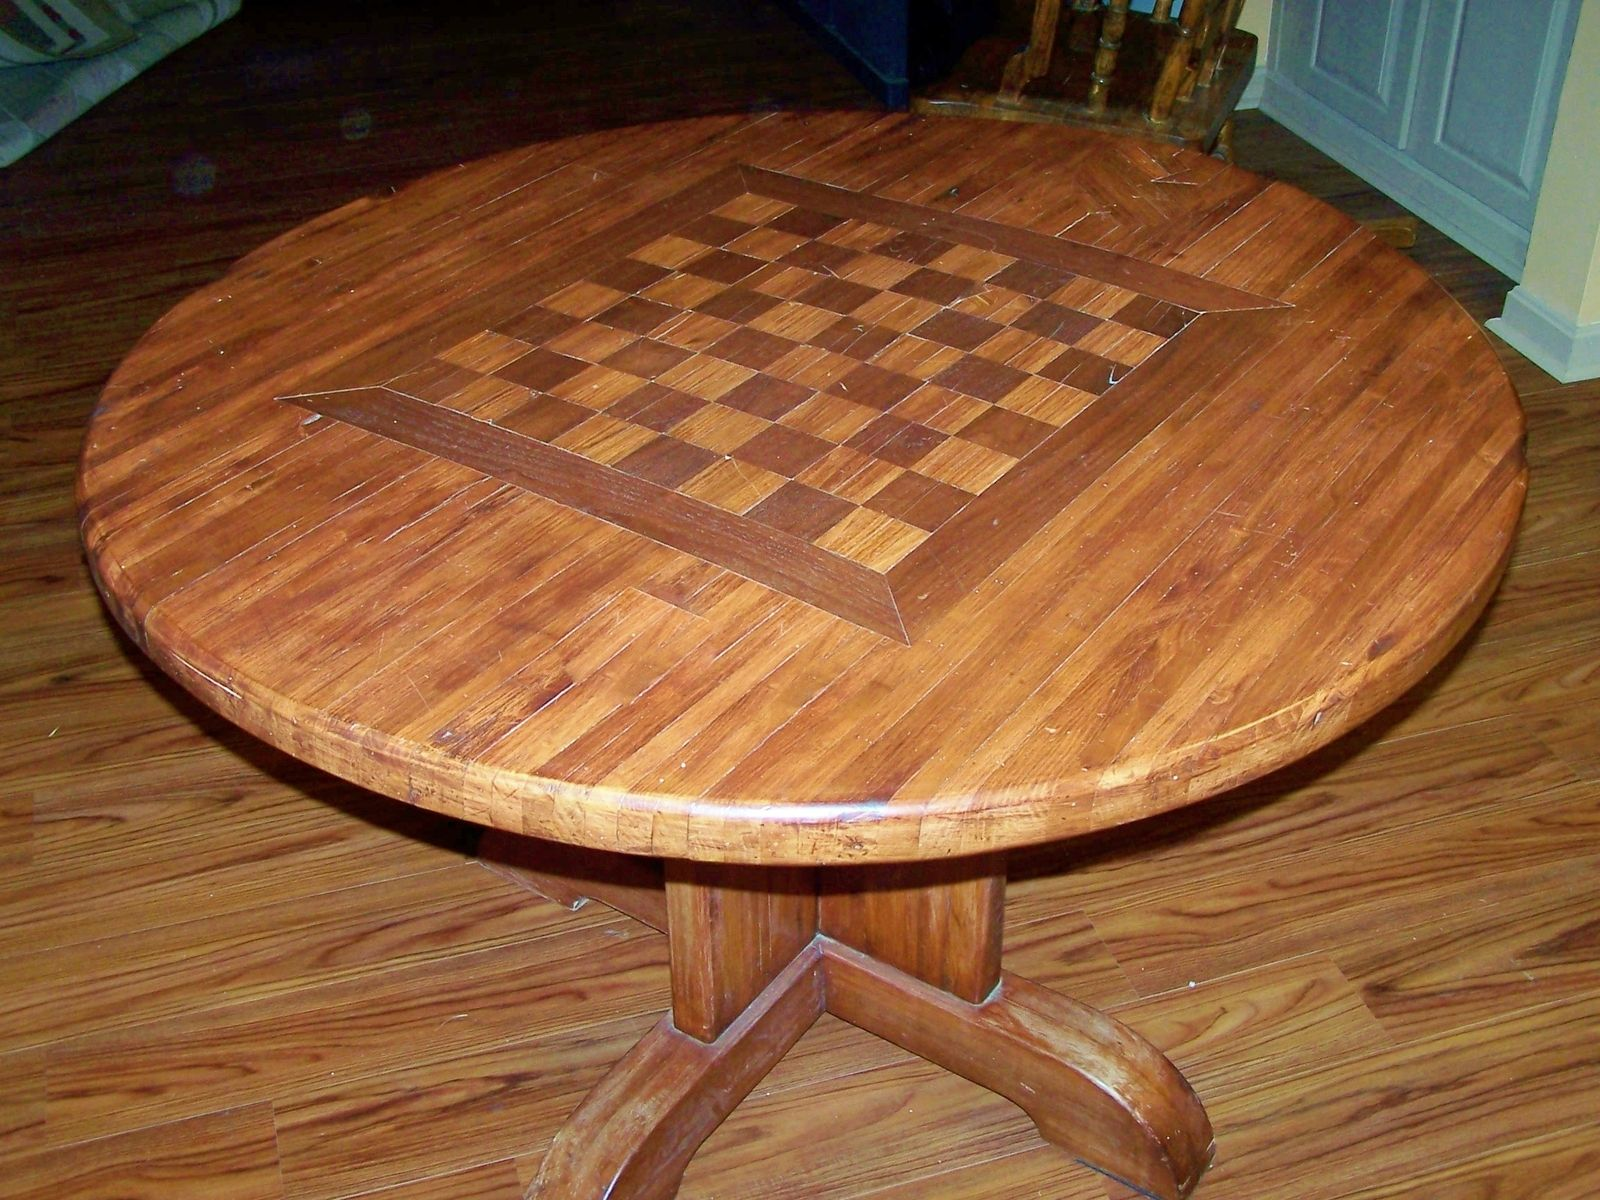 Handmade Butcher Block Table With Chess Board By Classic